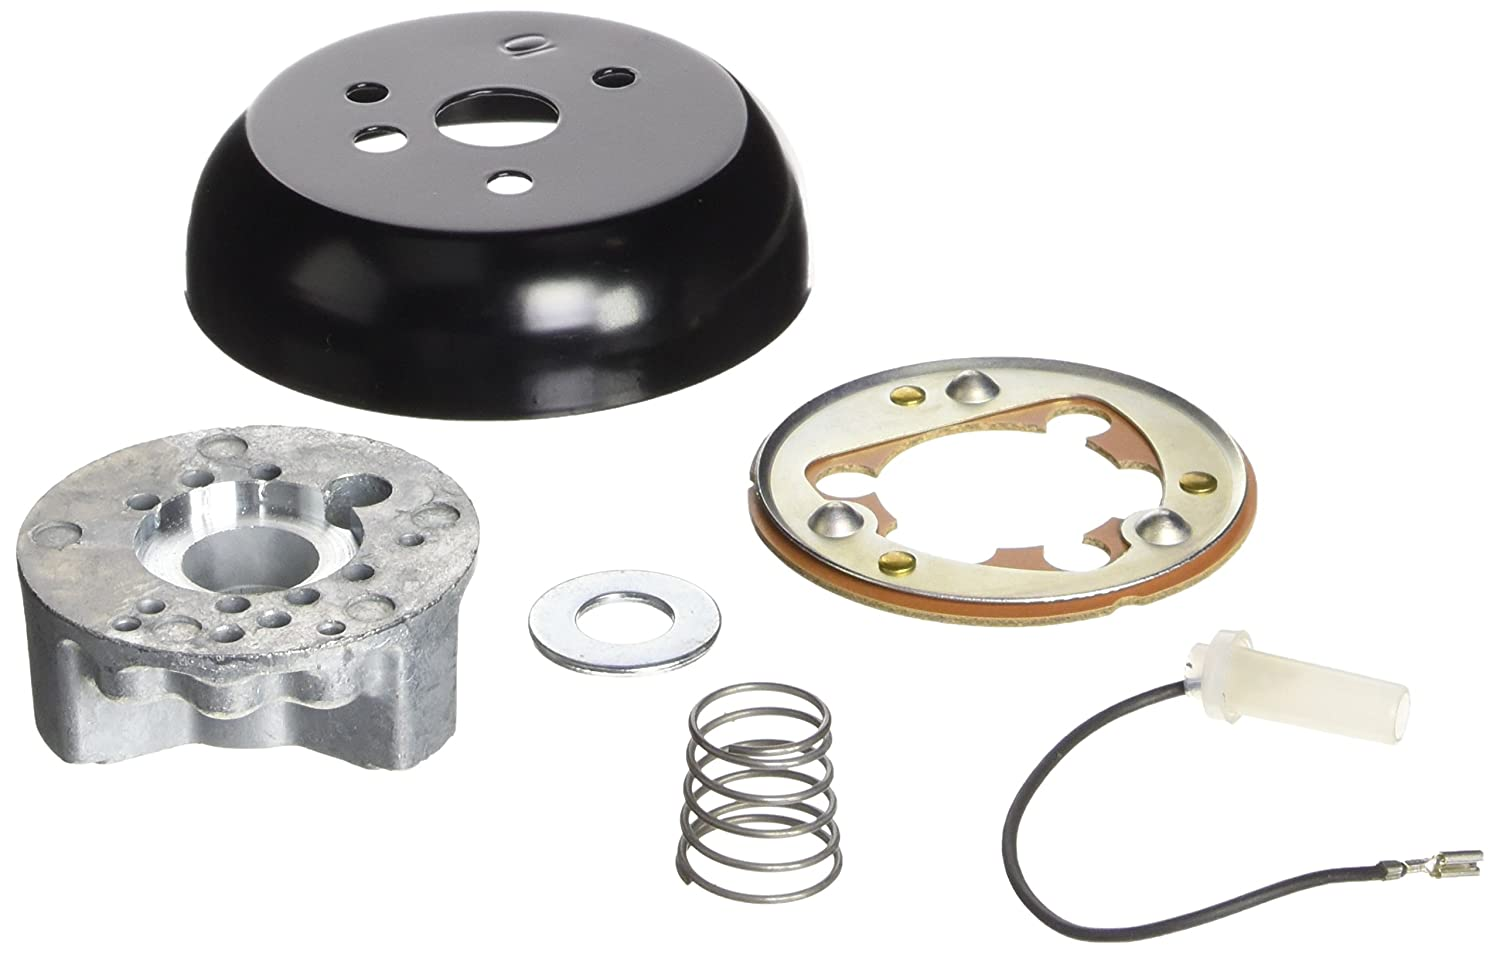 Grant Products 3163 Installation Kit